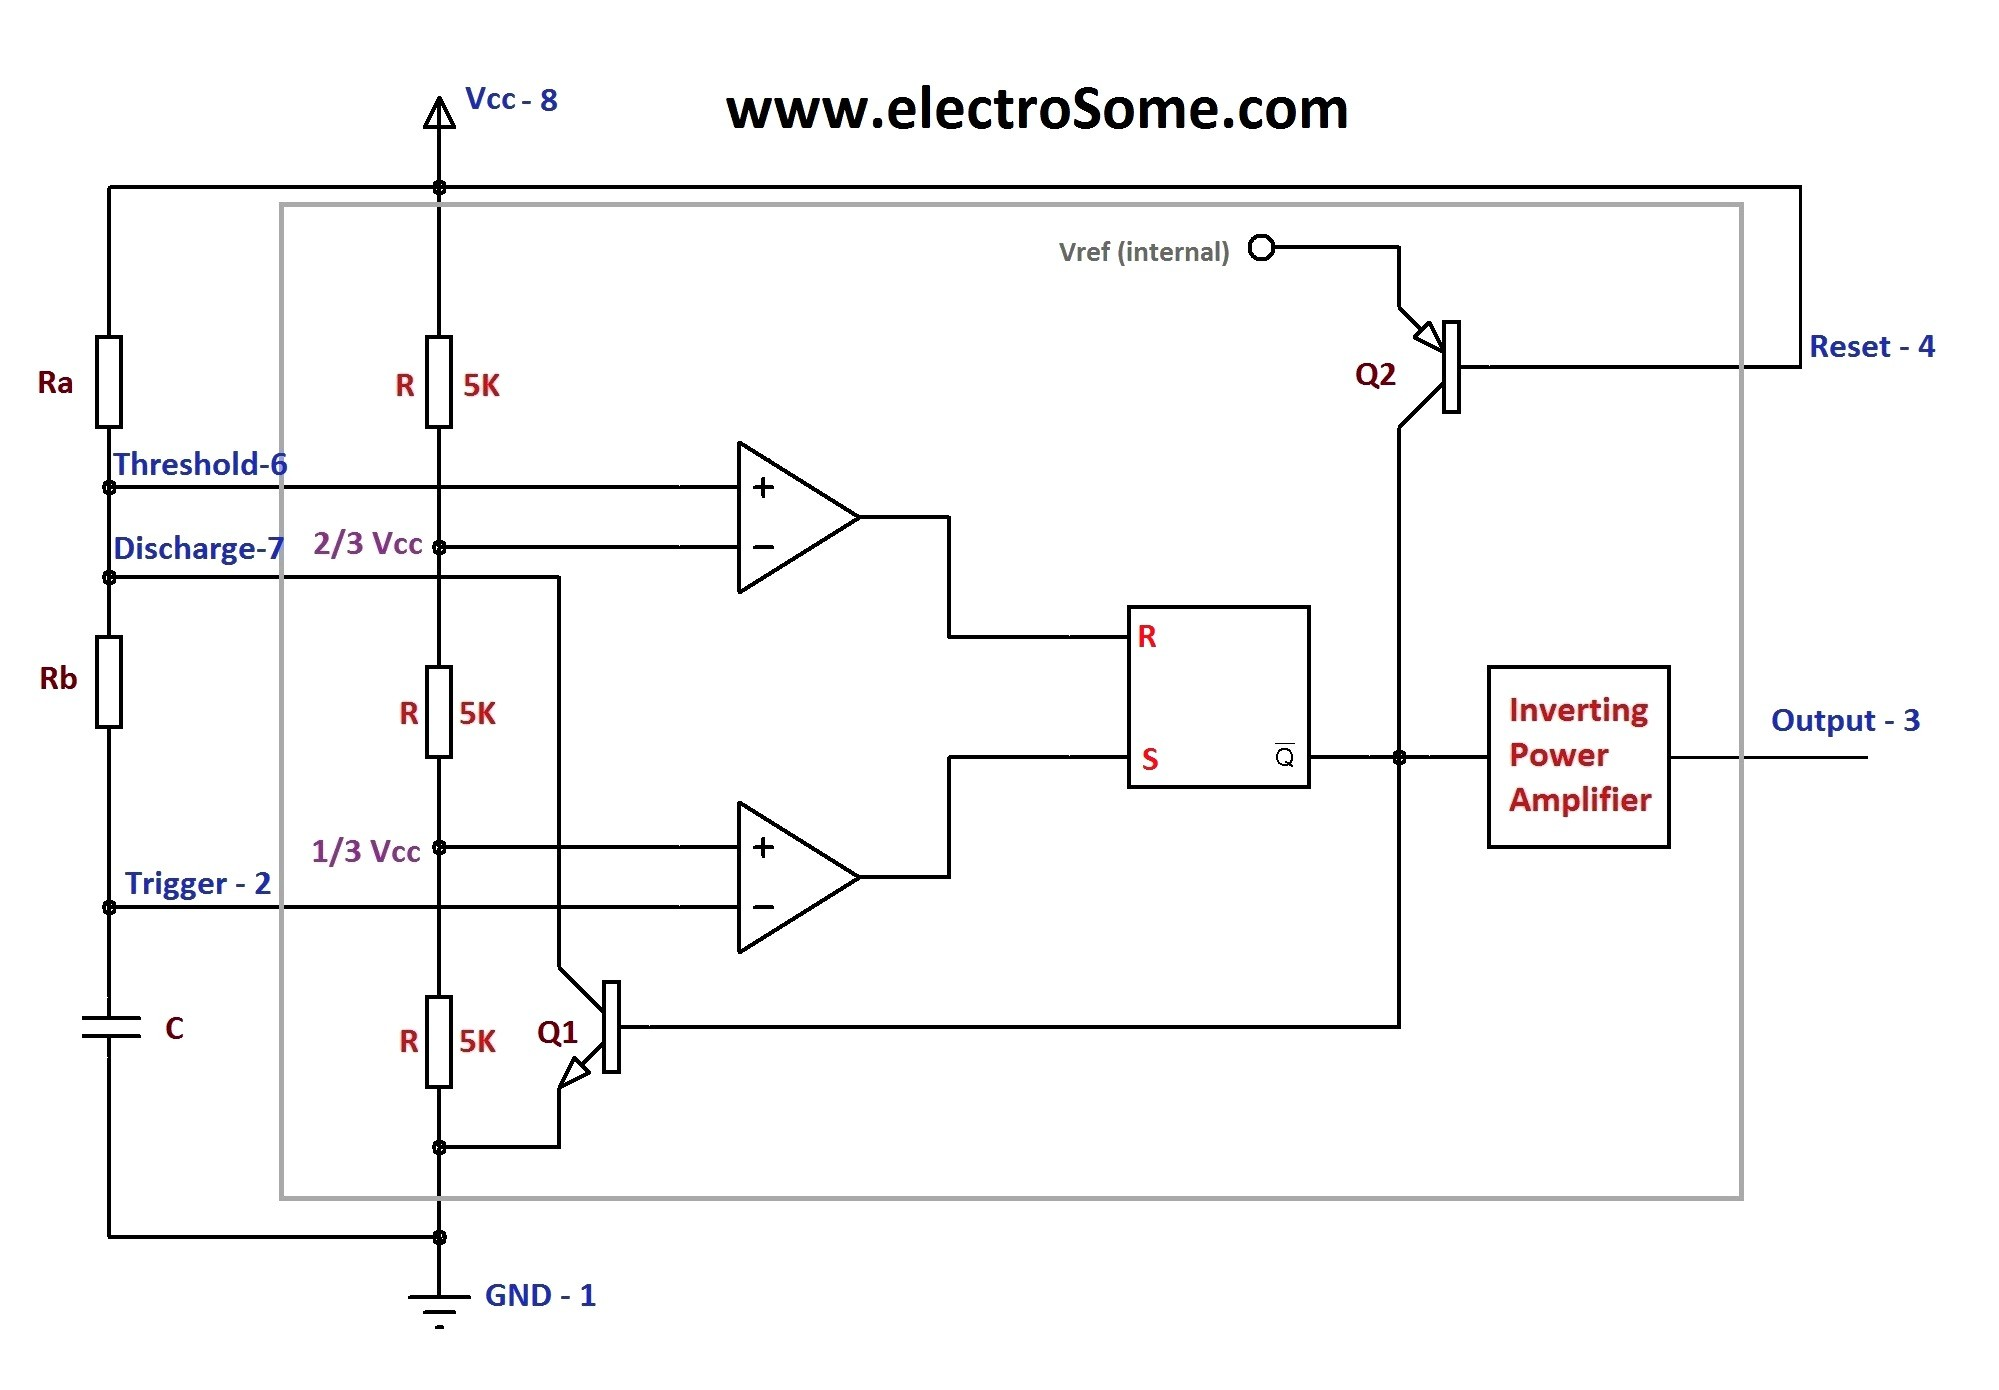 Compact Fluorescent Circuit Diagram Wiring Image Cfl Ponent Simple Using Timer Rain Alarm Project And Astable Multivibrator With Internal Di